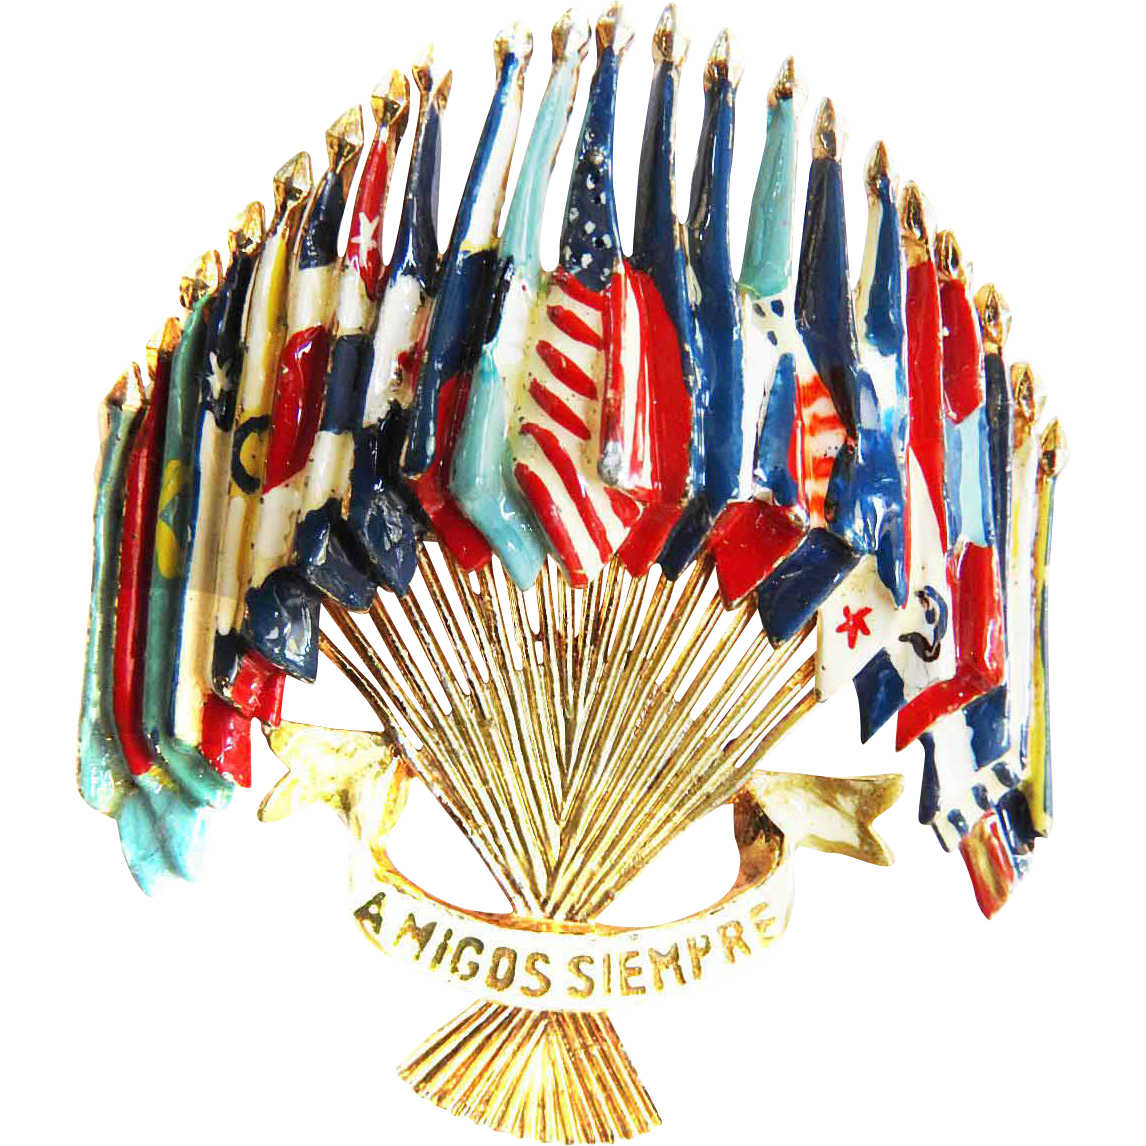 Vintage Amigos Siempre Friends of The World Coro Brooch